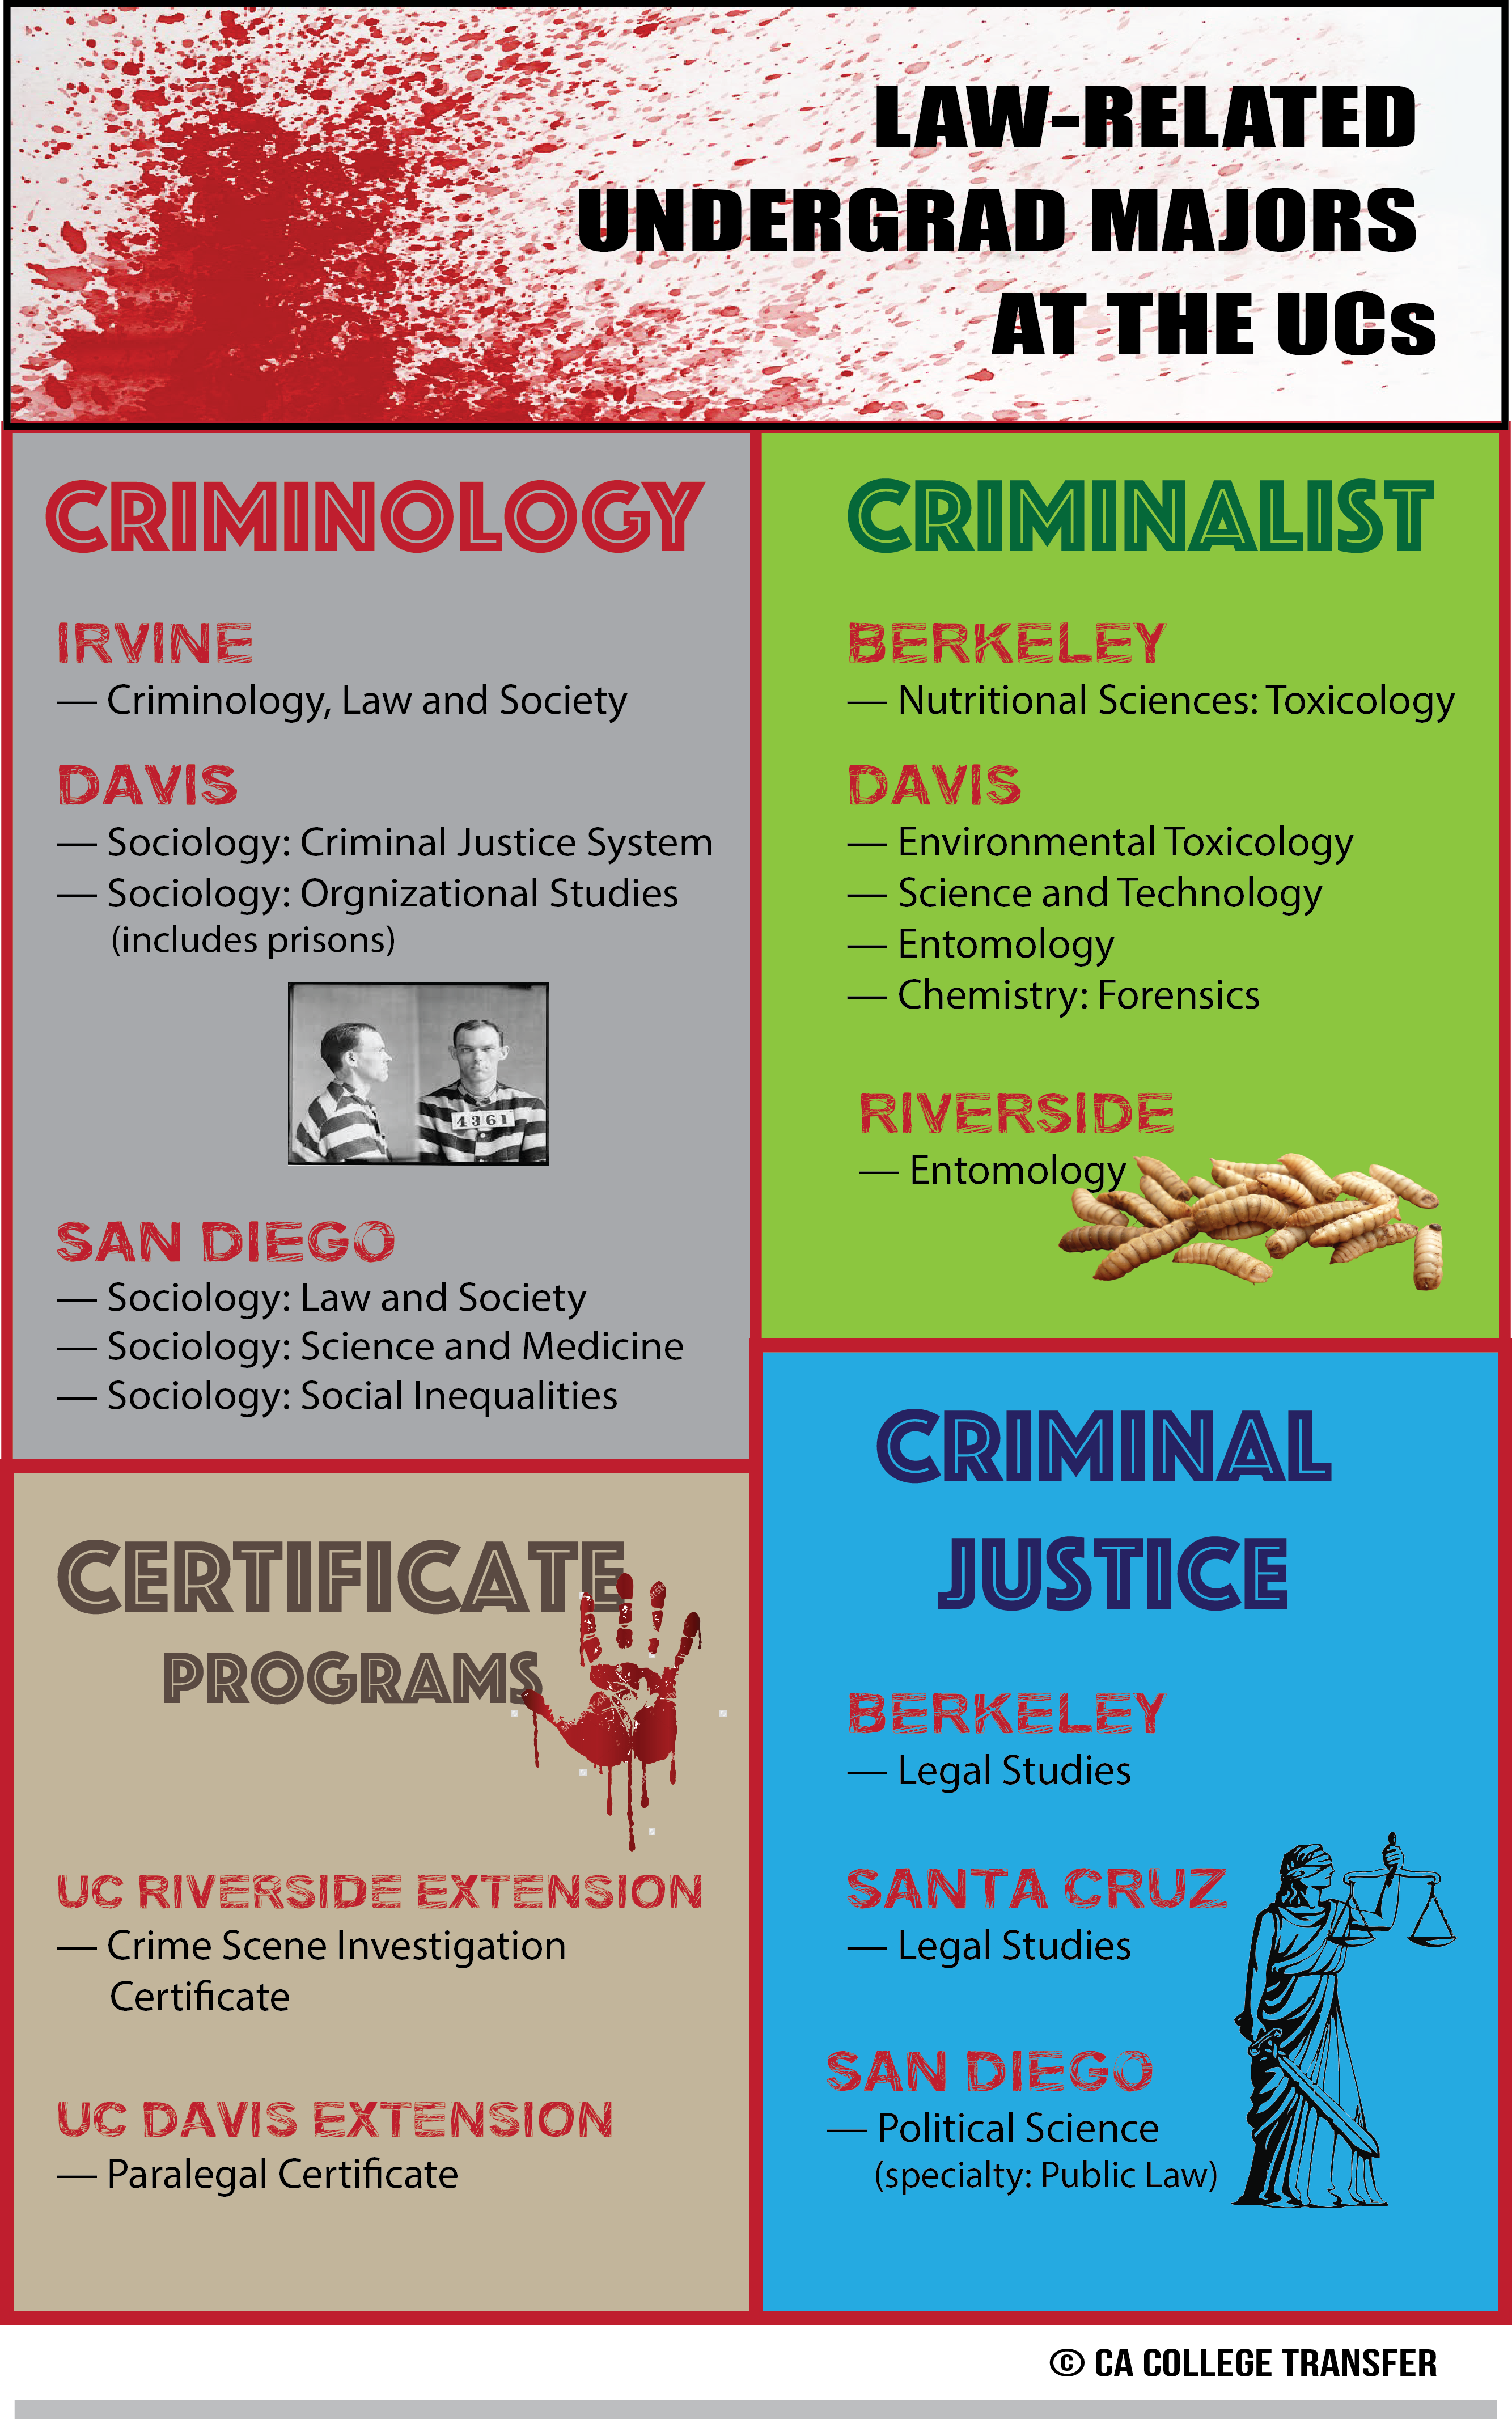 Law-Related Undergrad Majors